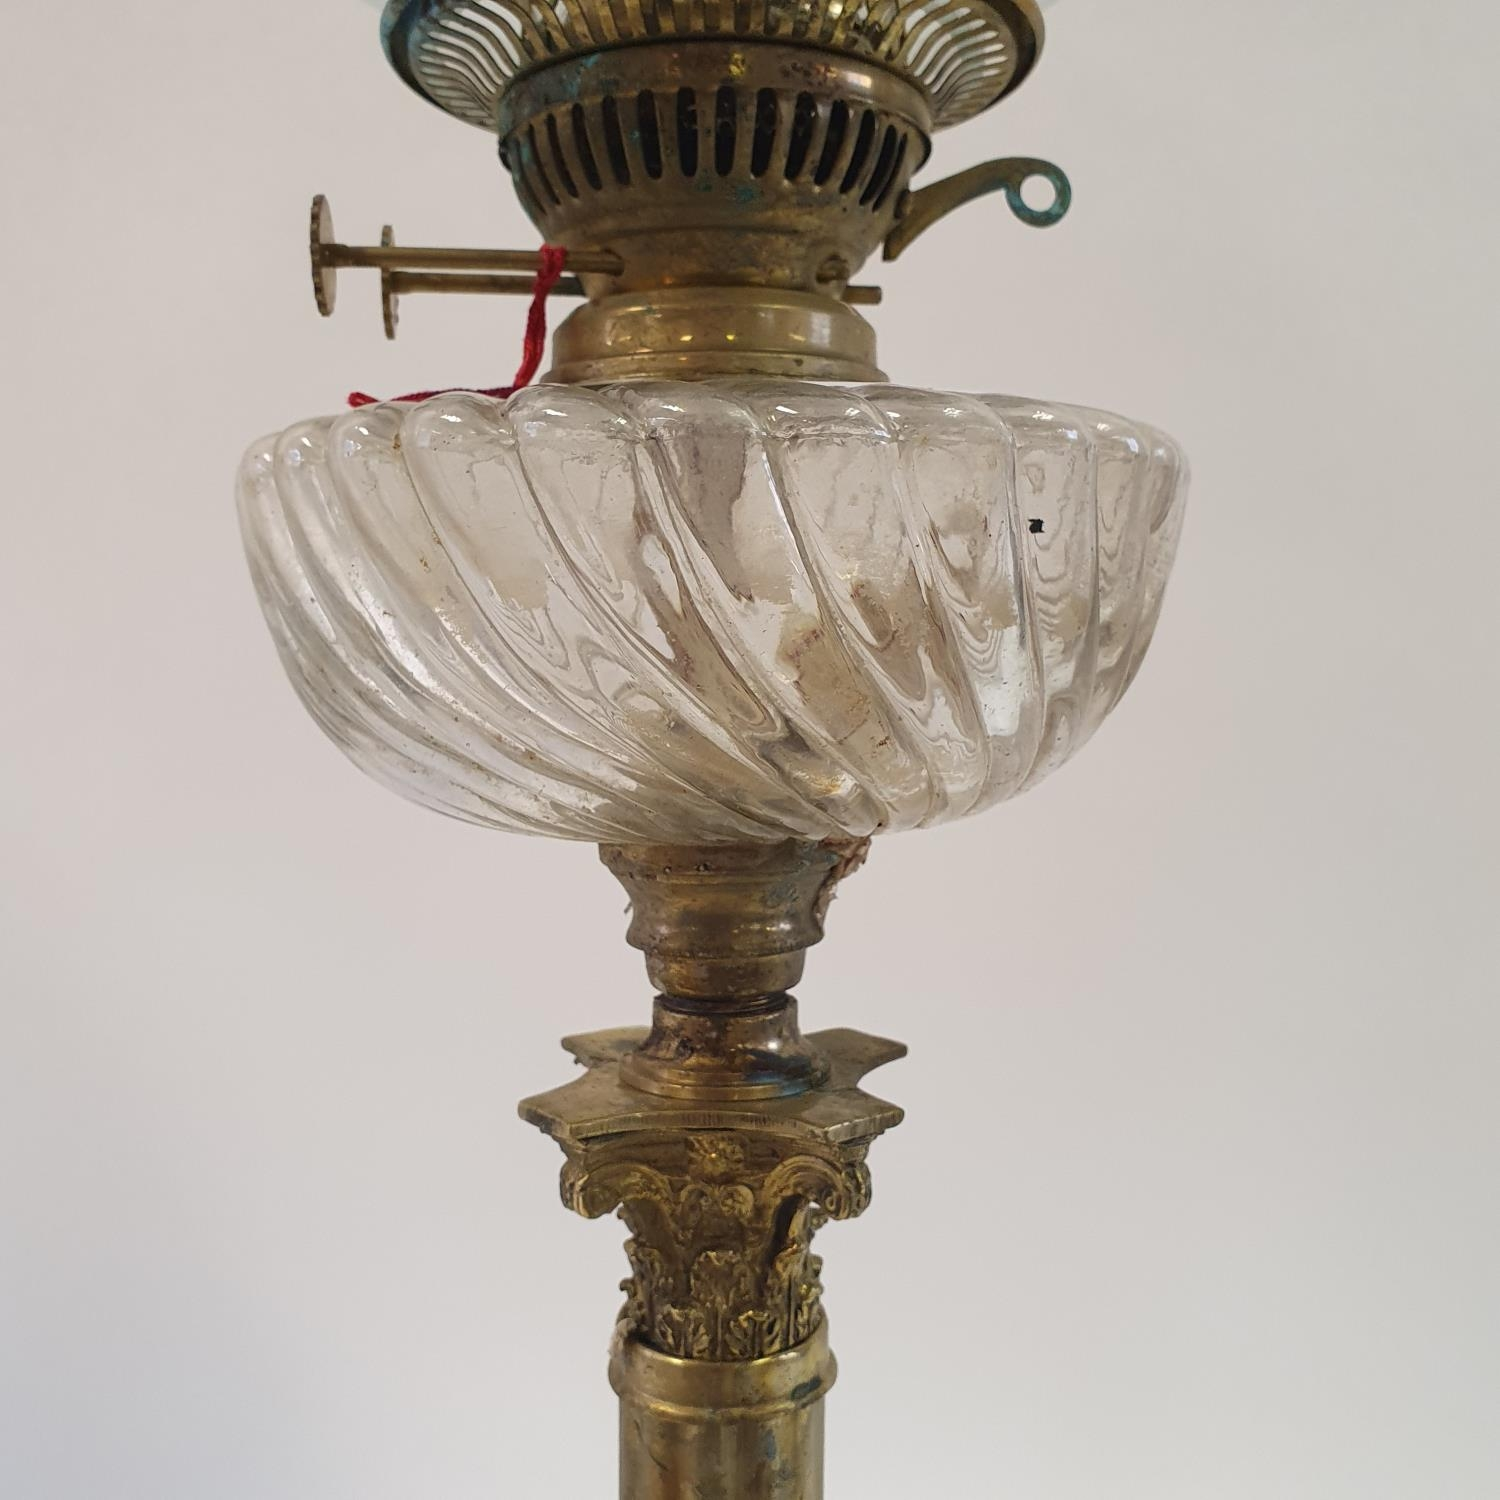 An oil lamp, with an acid etched glass shade, a clear glass well, on a brass base in the form of a - Image 2 of 3